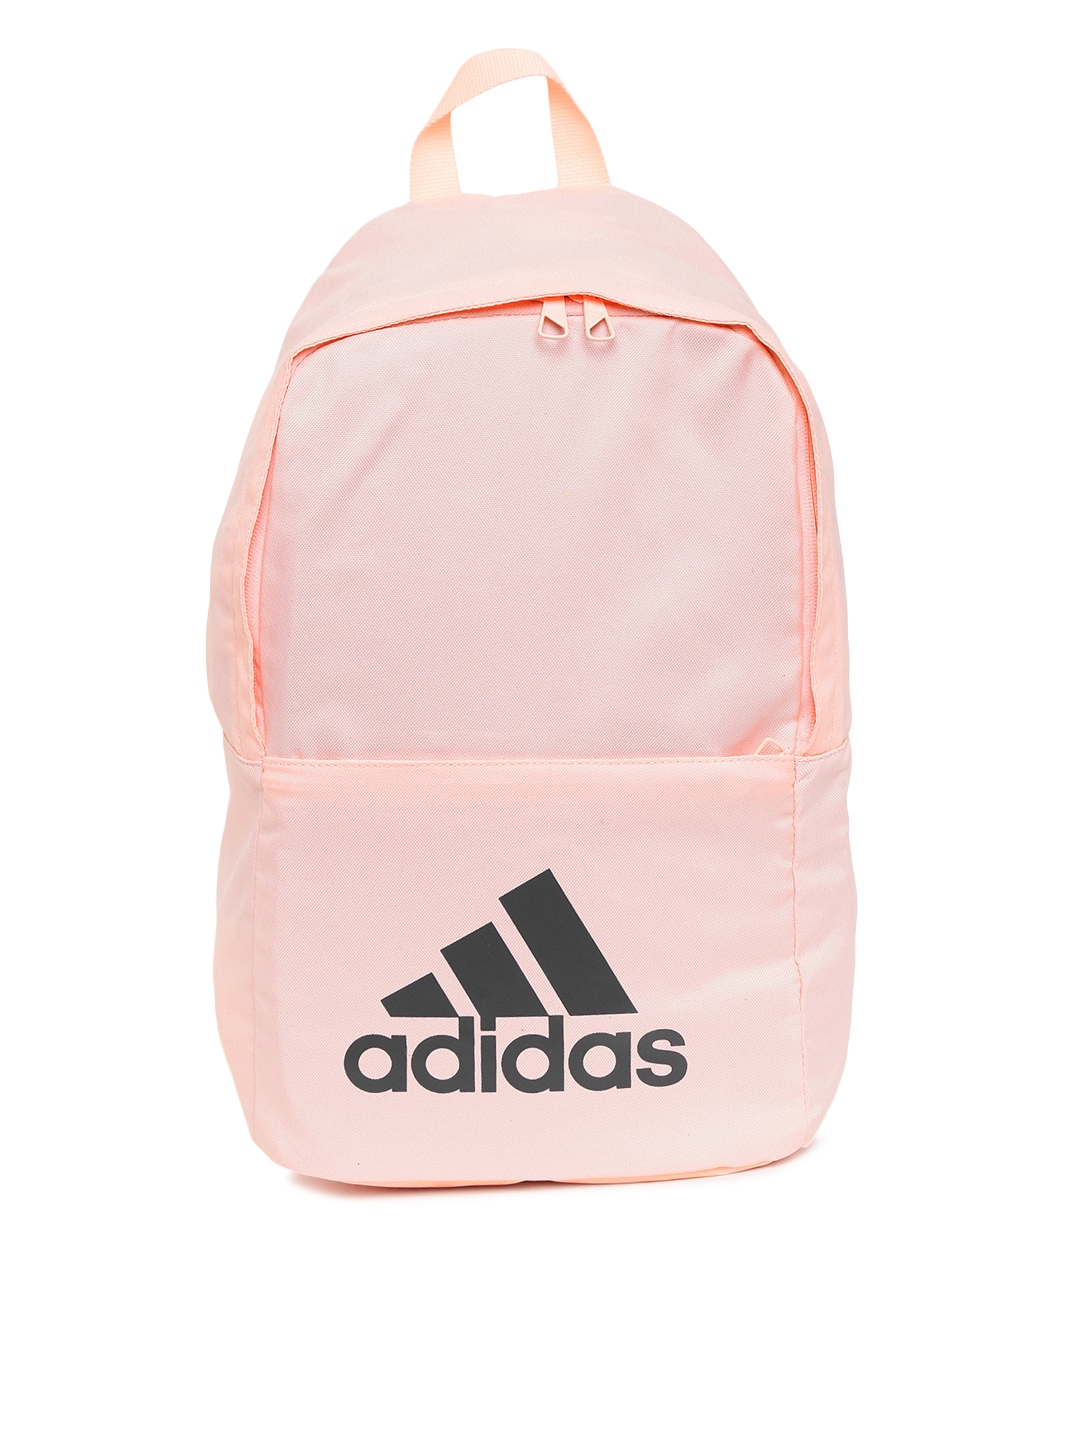 adidas - Exclusive adidas Online Store in India at Myntra 3257114c6a10